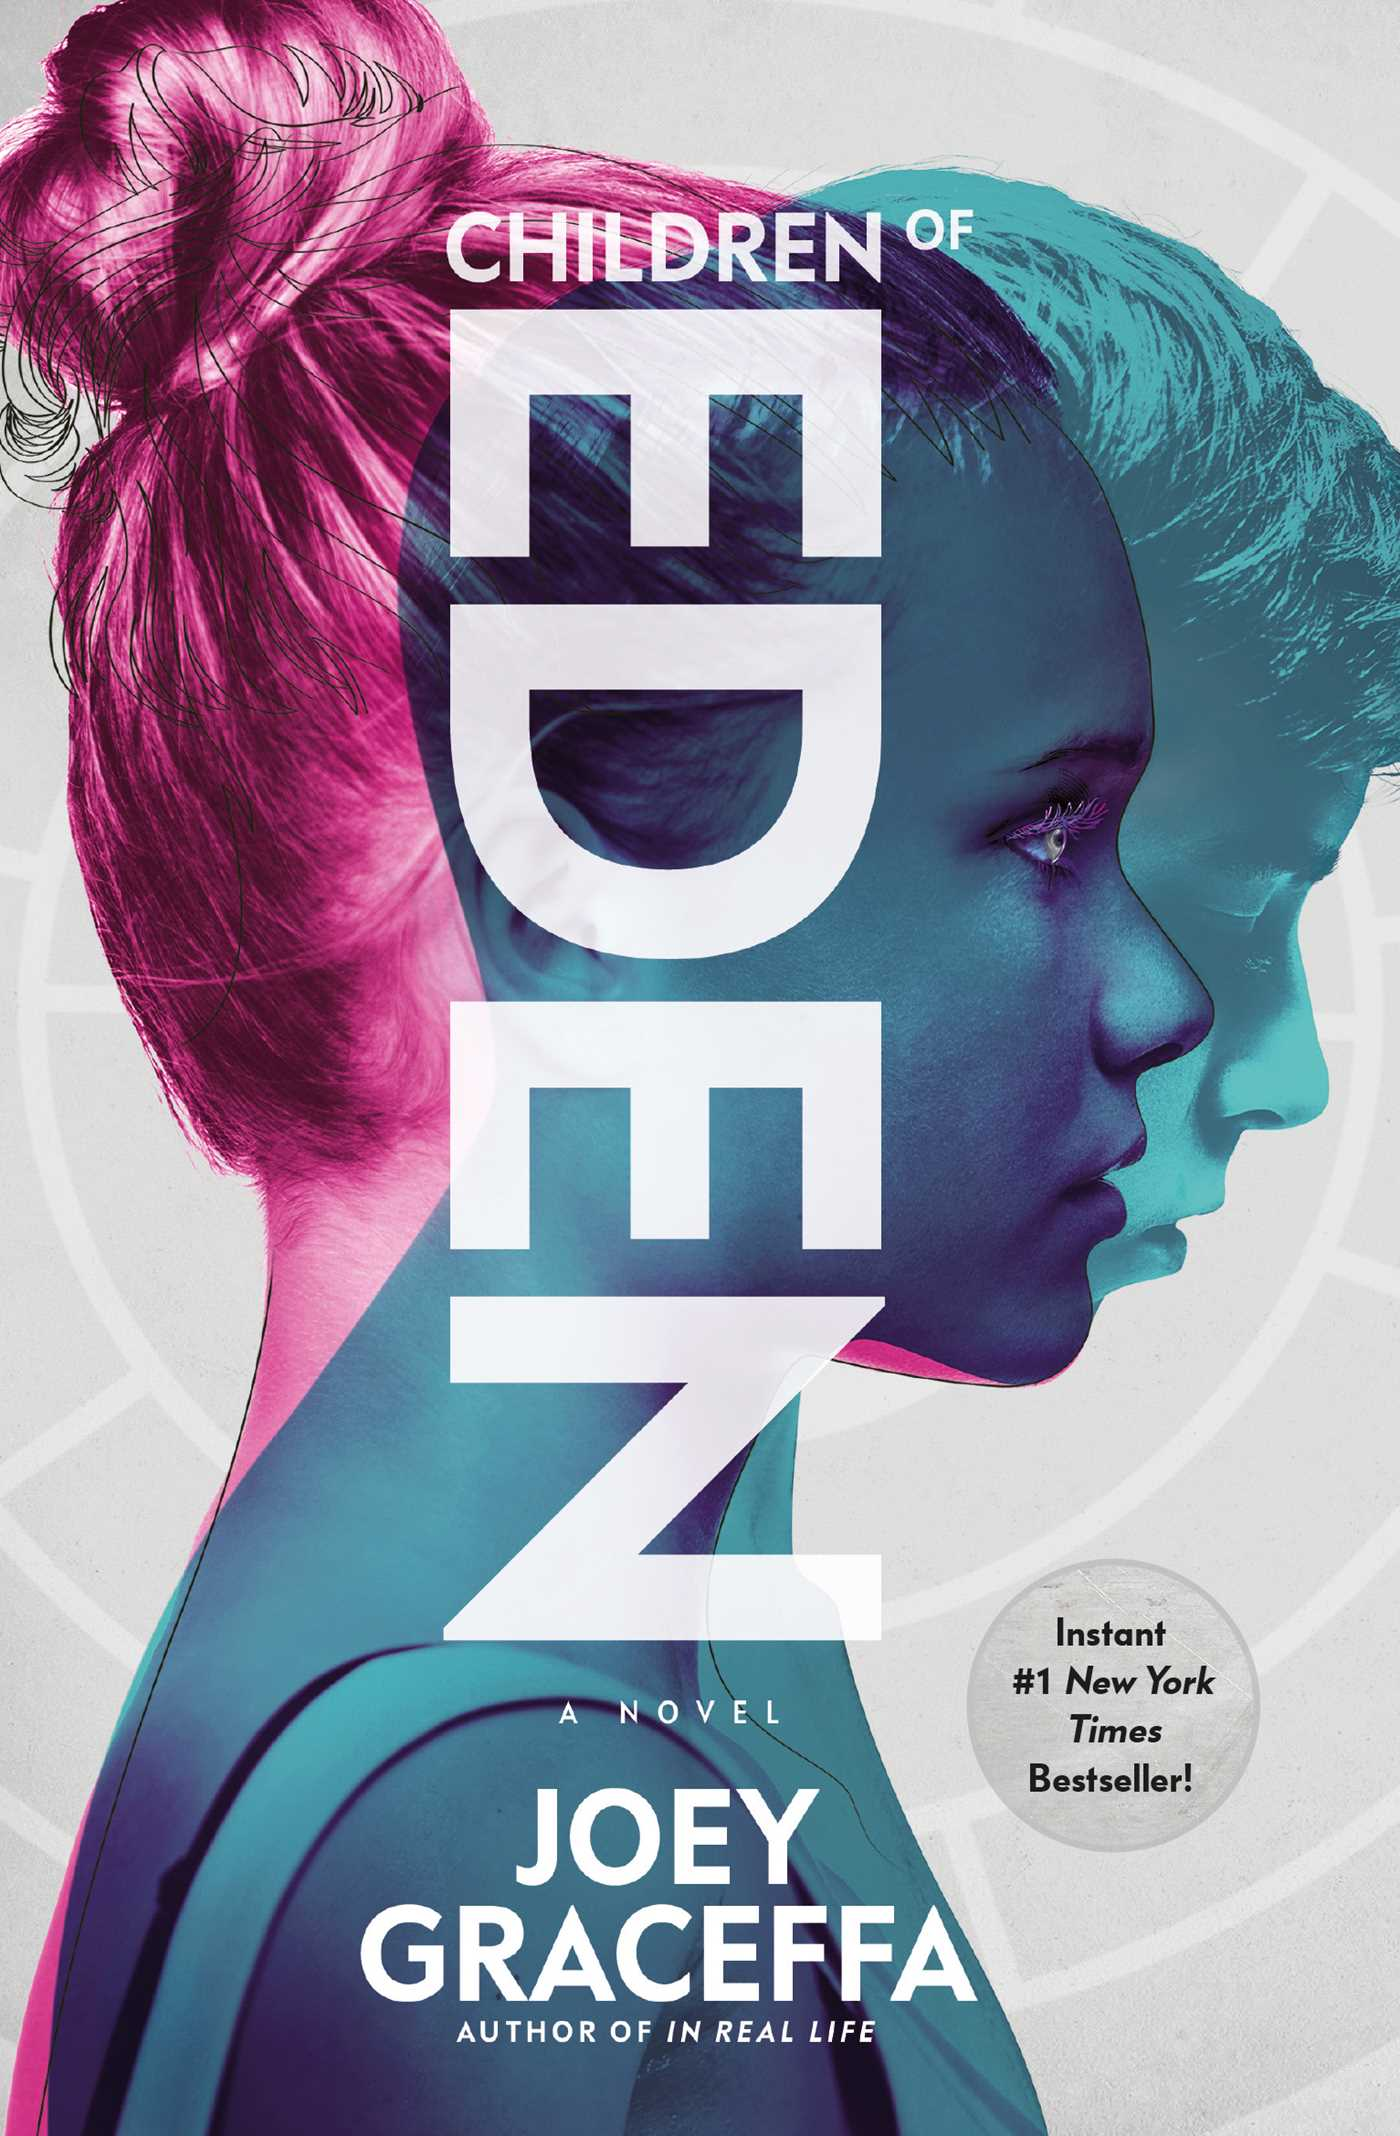 Children of eden book by joey graceffa official publisher page book cover image jpg children of eden fandeluxe Images